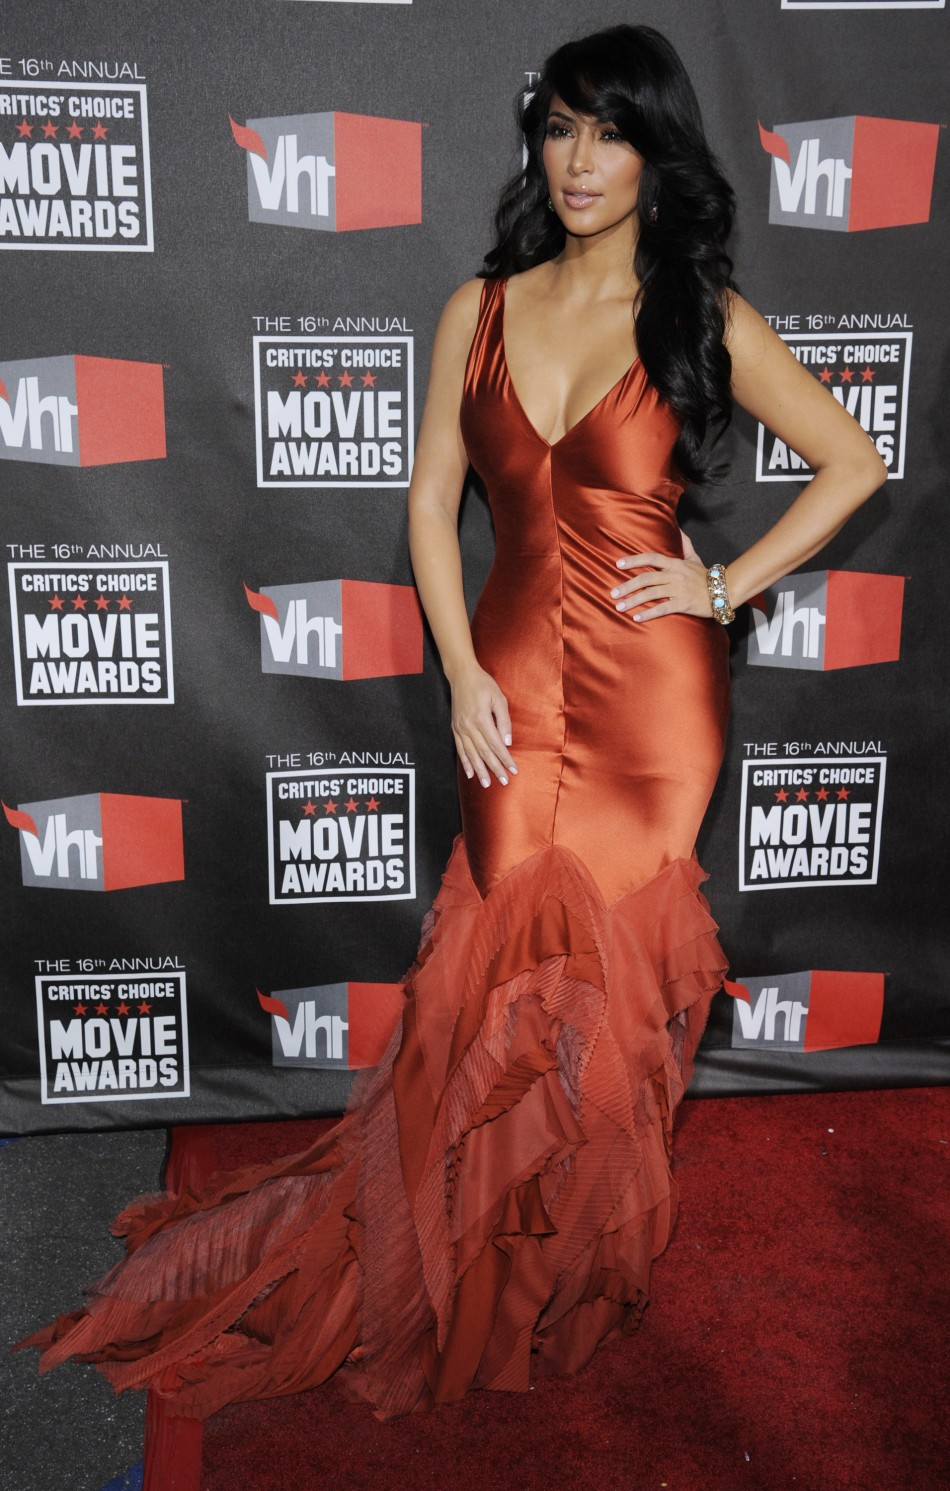 Reality TV personality Kim Kardashian arrives at the 16th Annual Critics' Choice Movie Awards in Hollywood